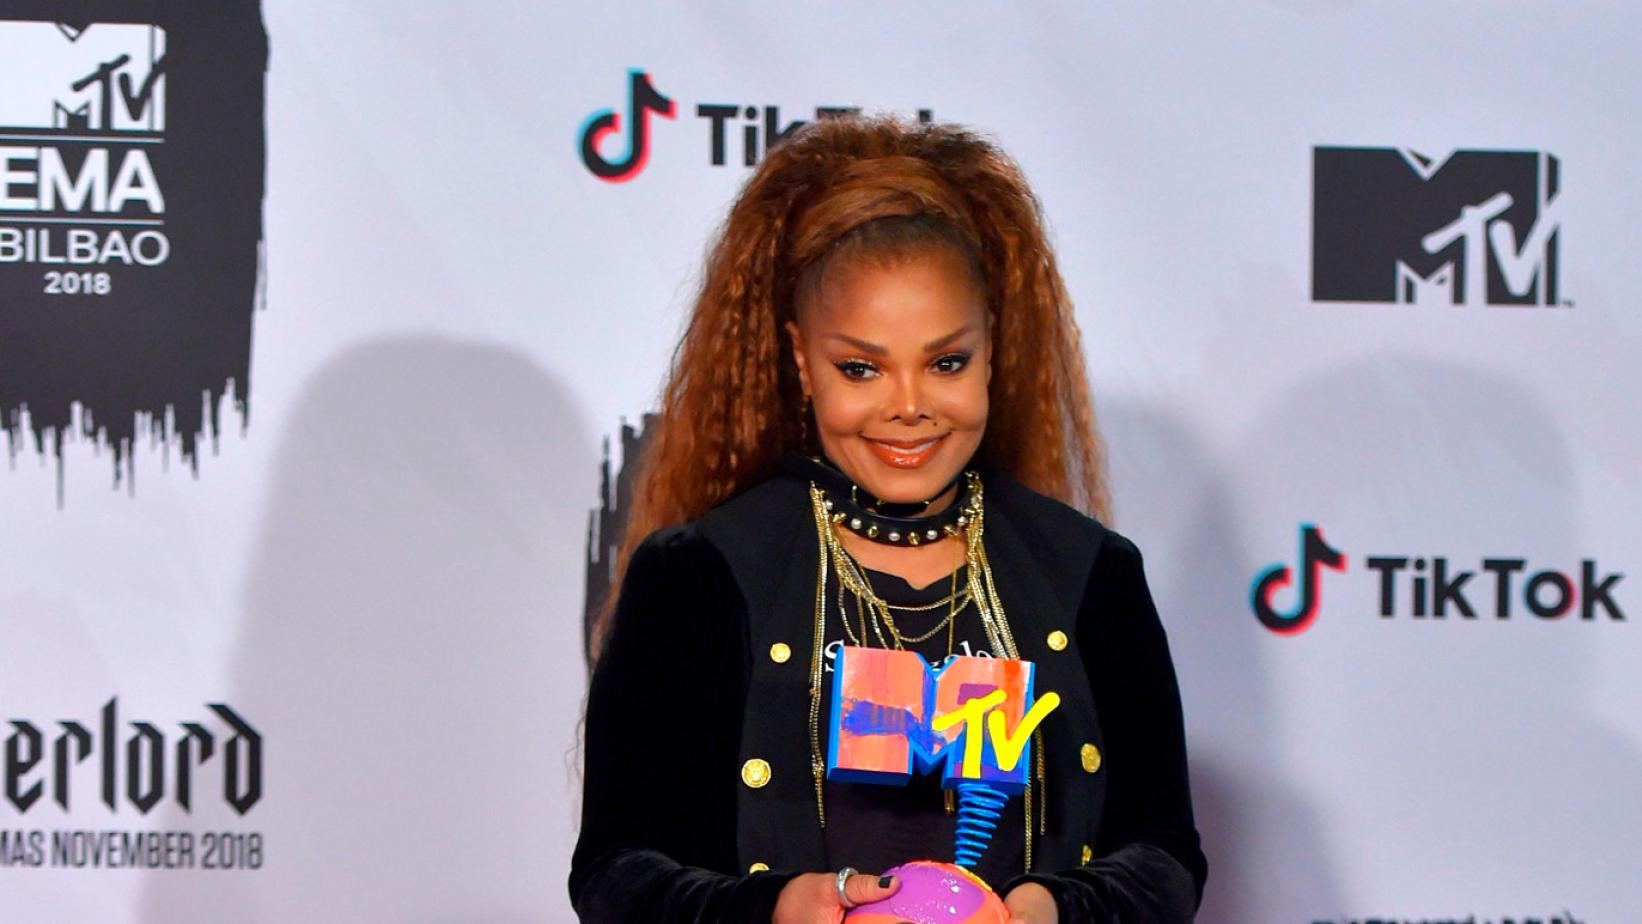 janet-jacksons-documentary-will-coincide-with-the-40th-anniversary-of-her-debut-album